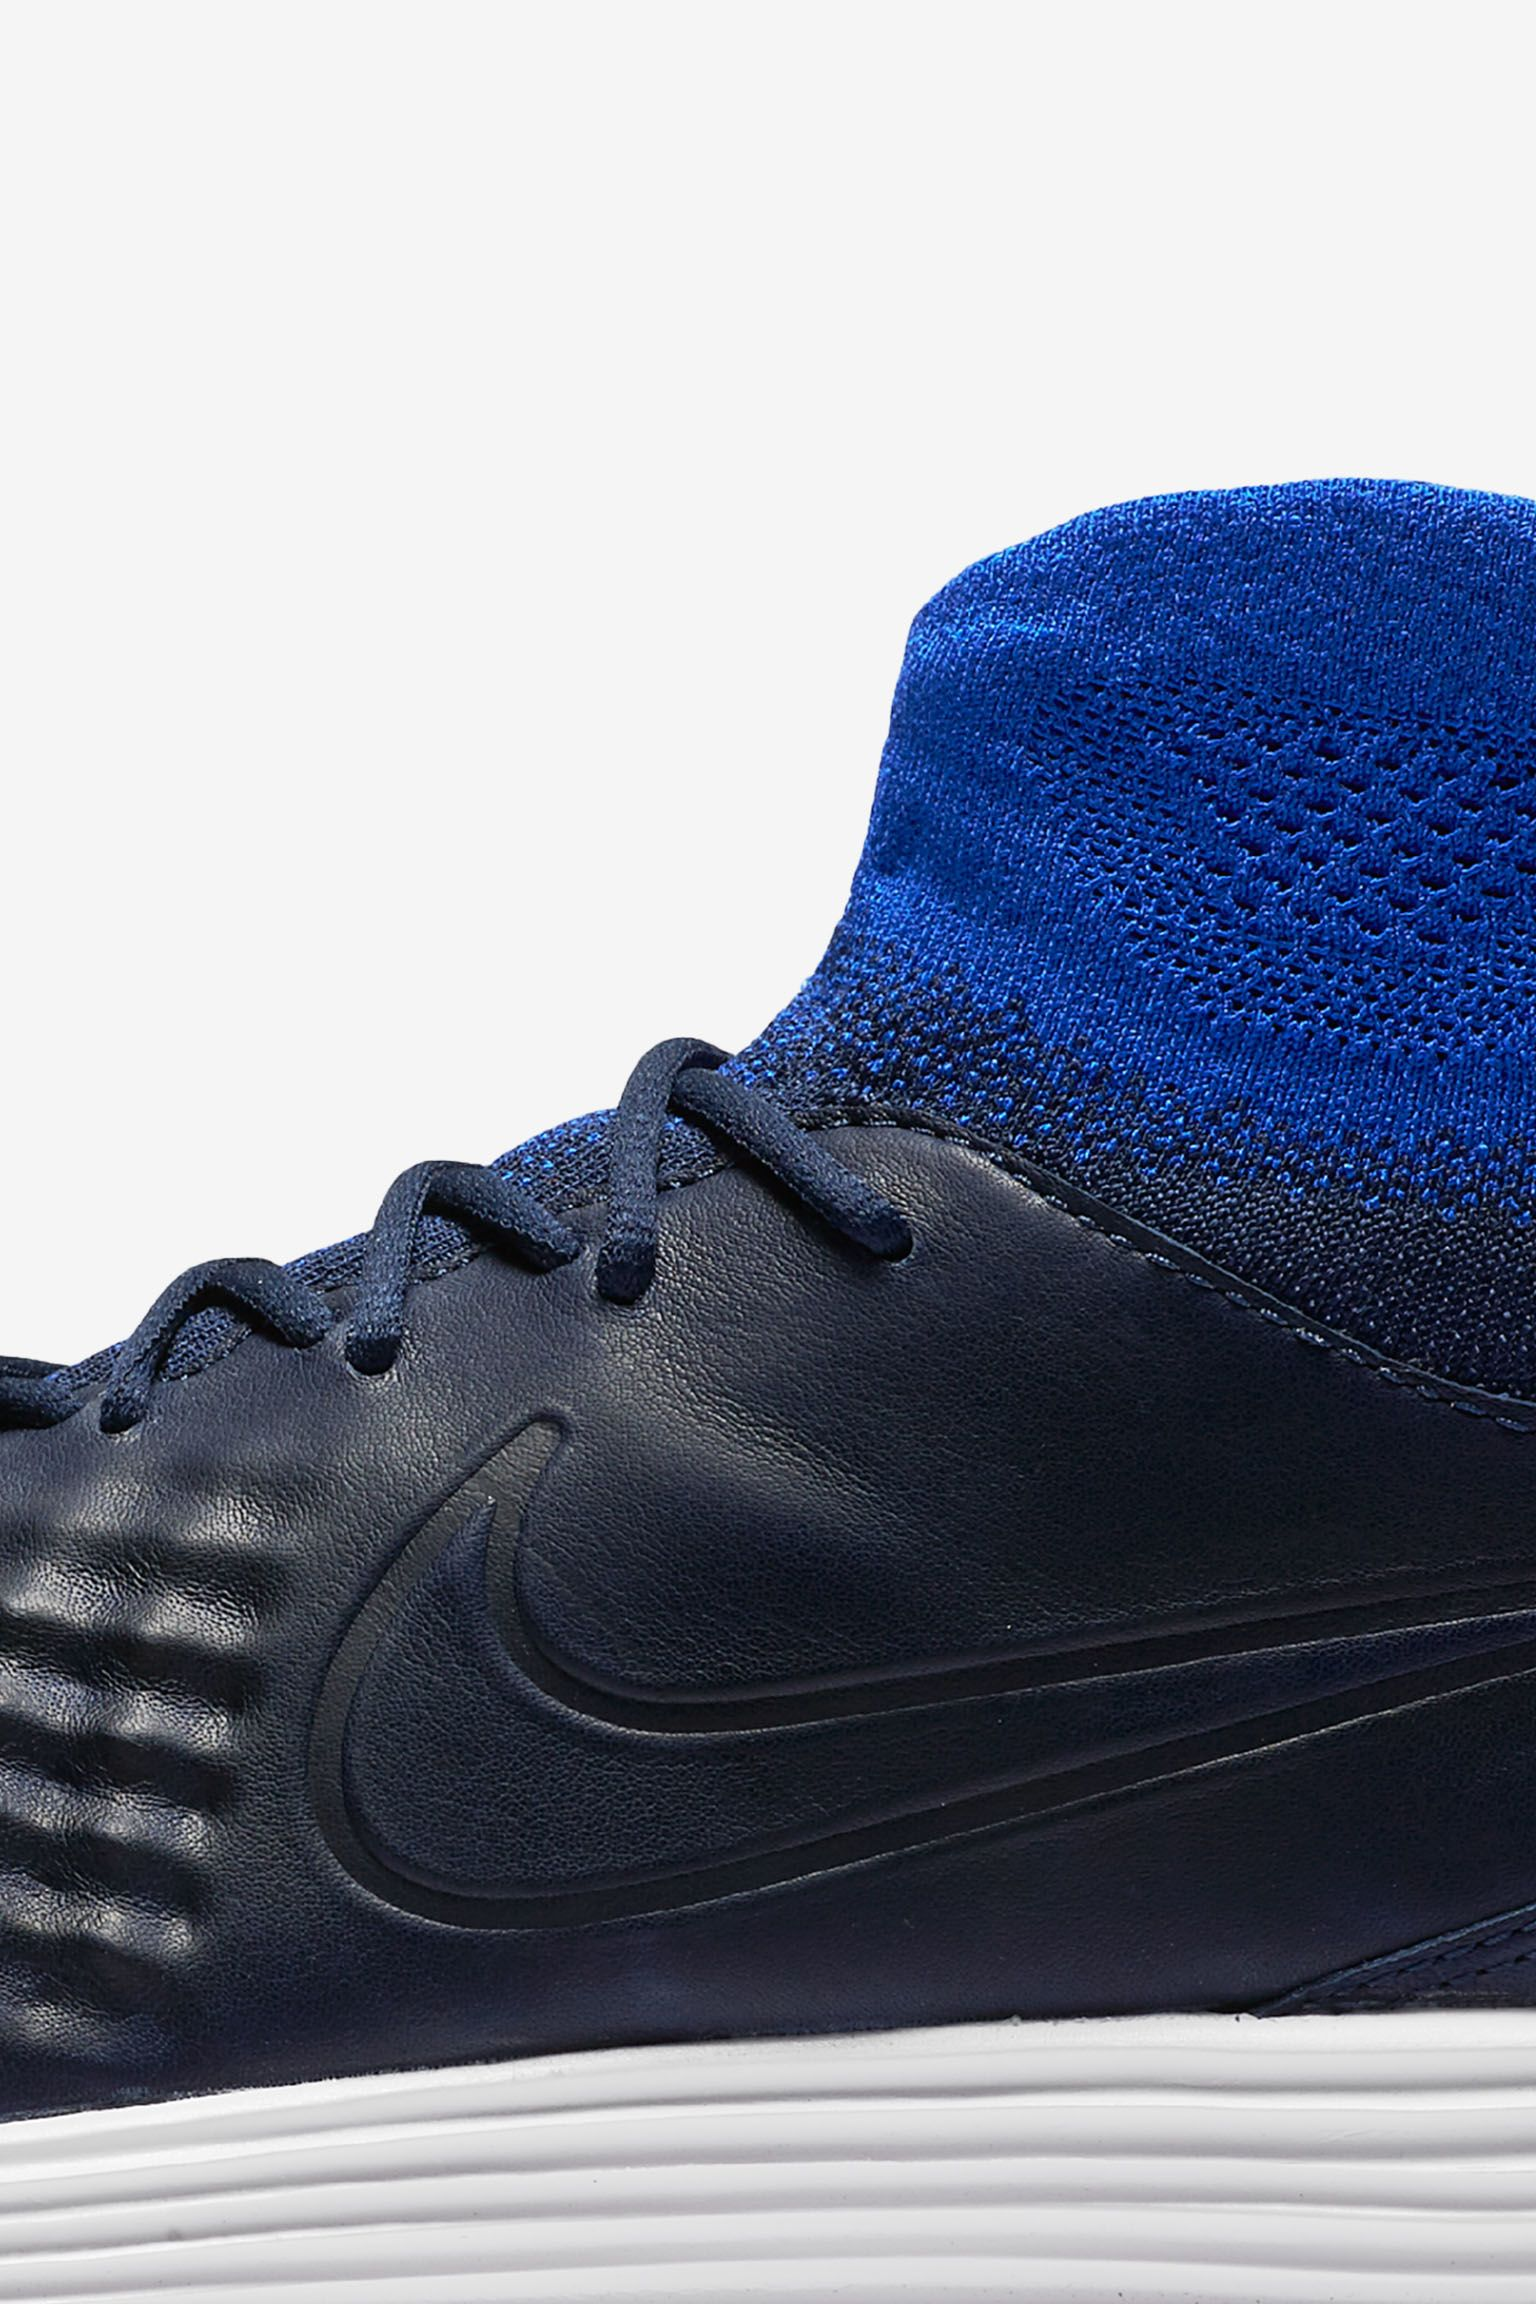 Nike Lunar Magista 2 Flyknit 'College Navy & Racer Blue'. Release Date